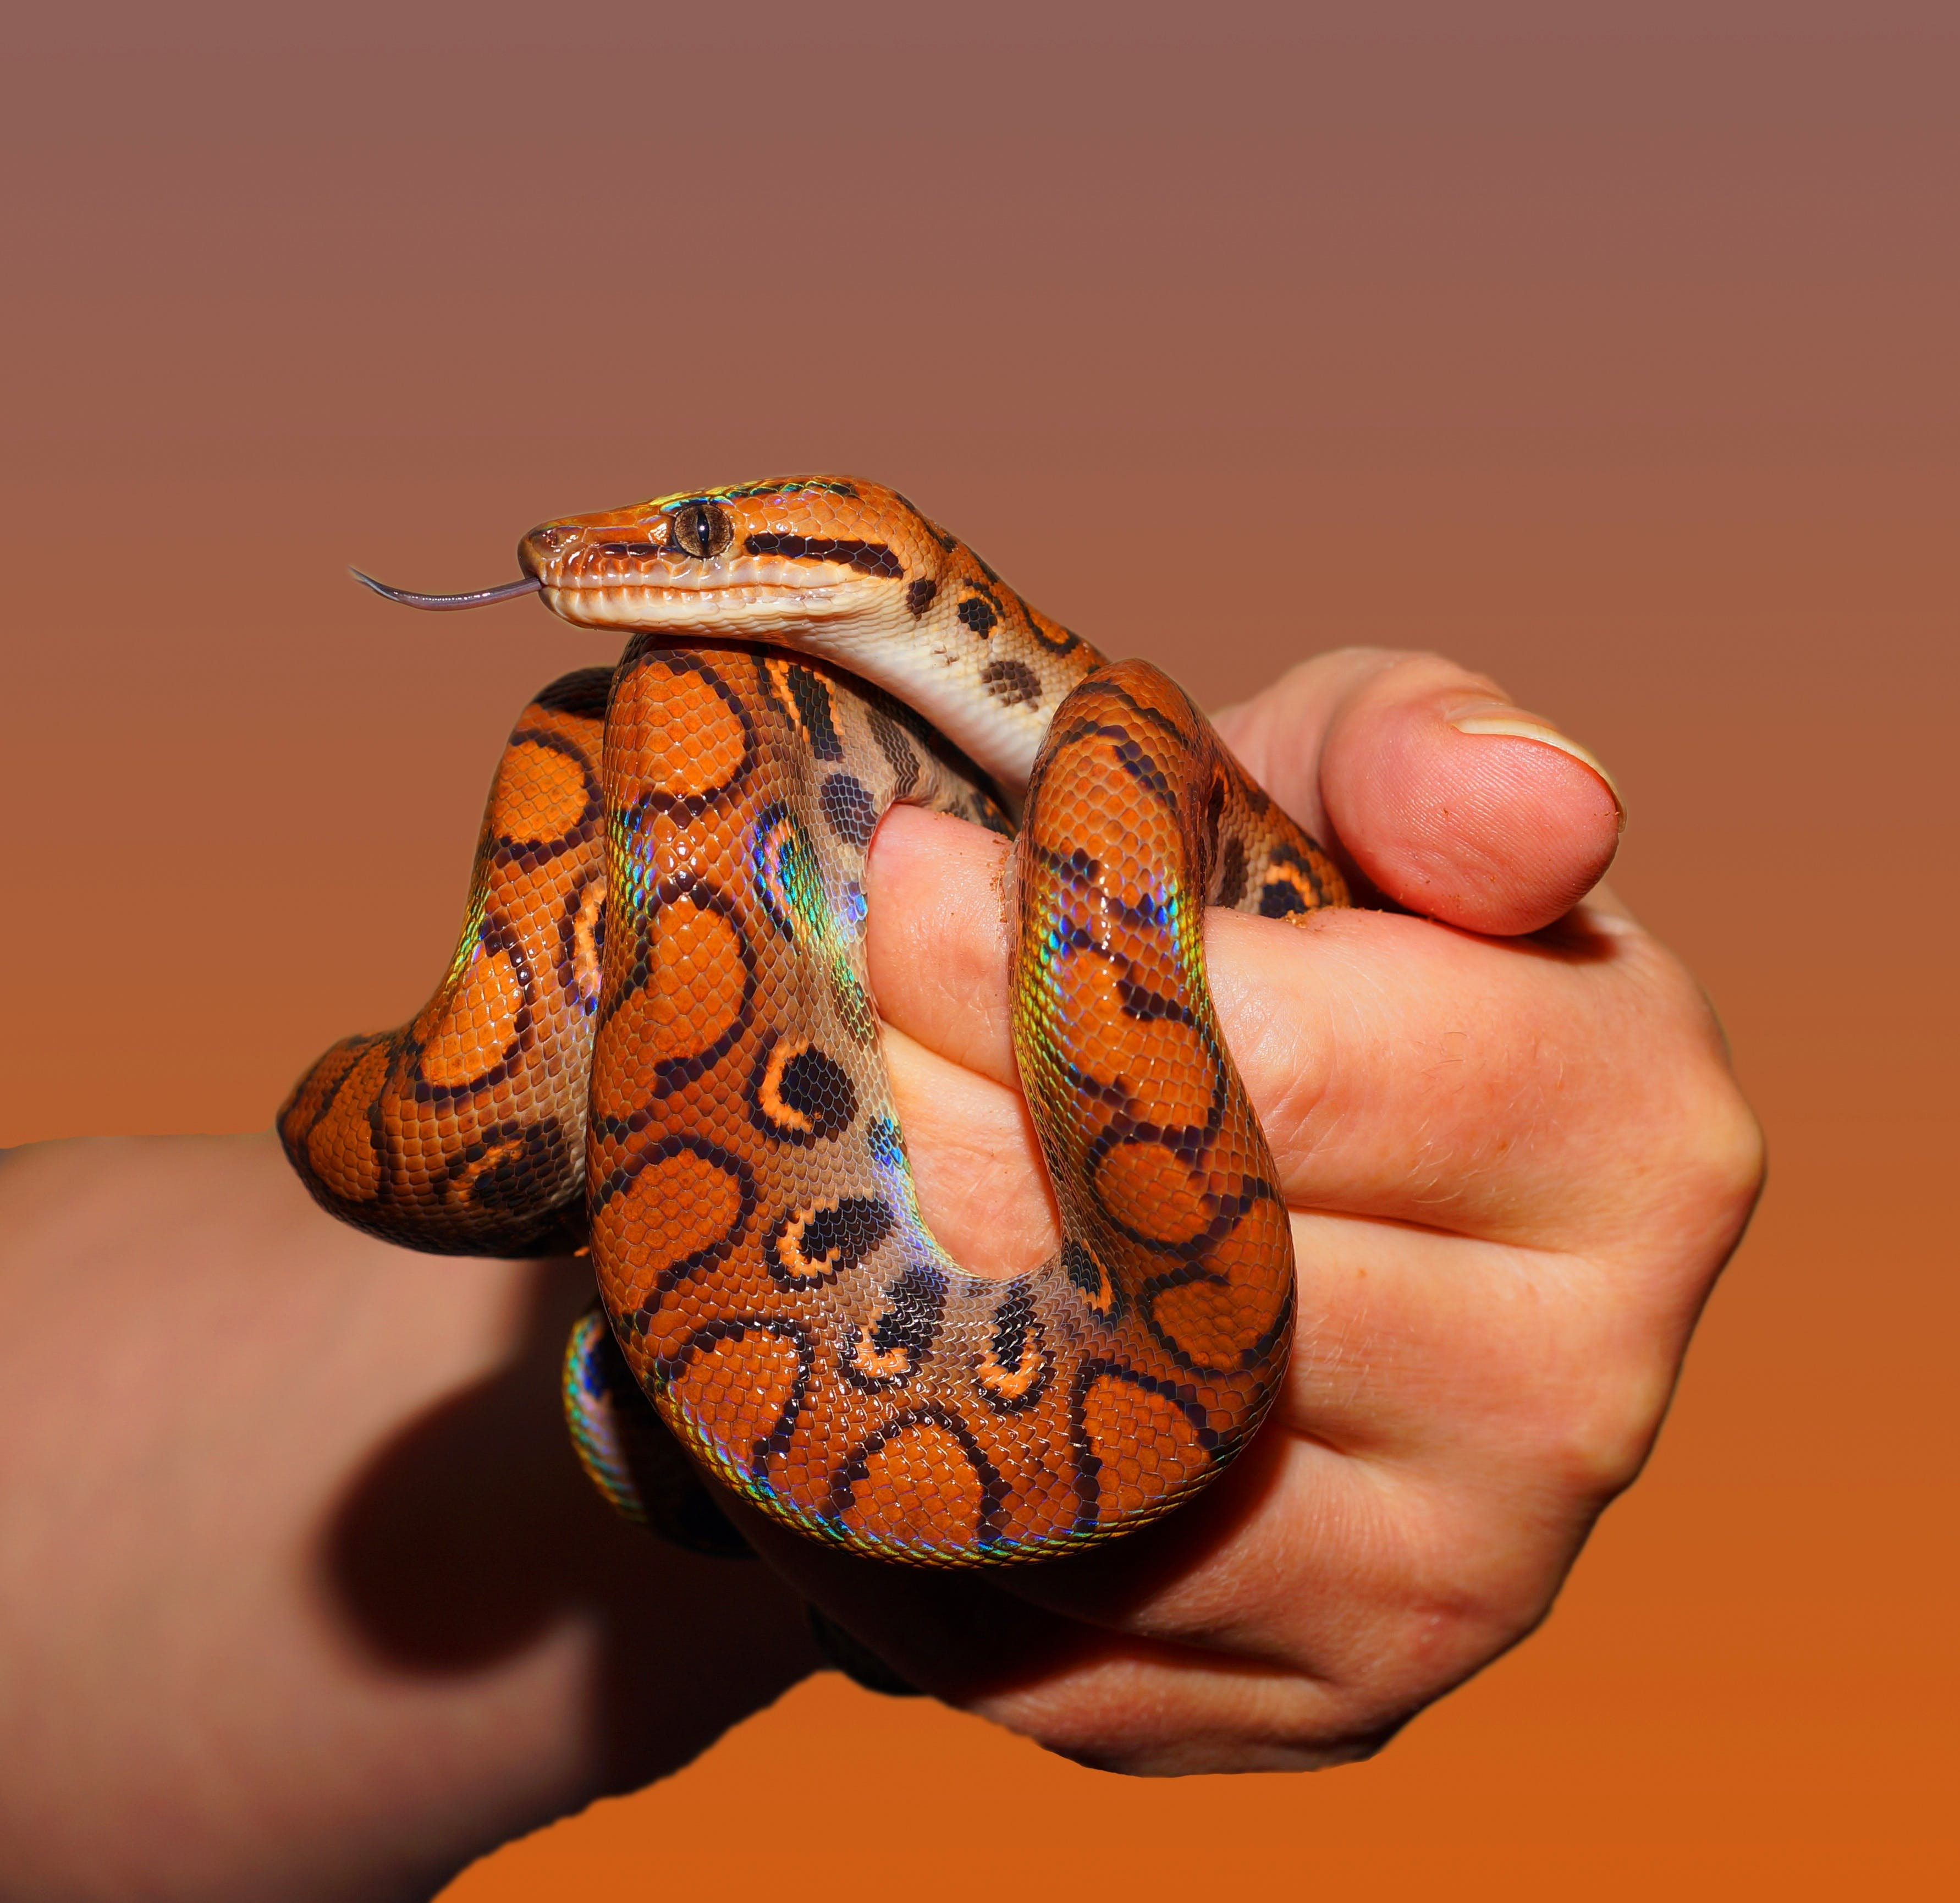 Person Holding Red and Black Snake